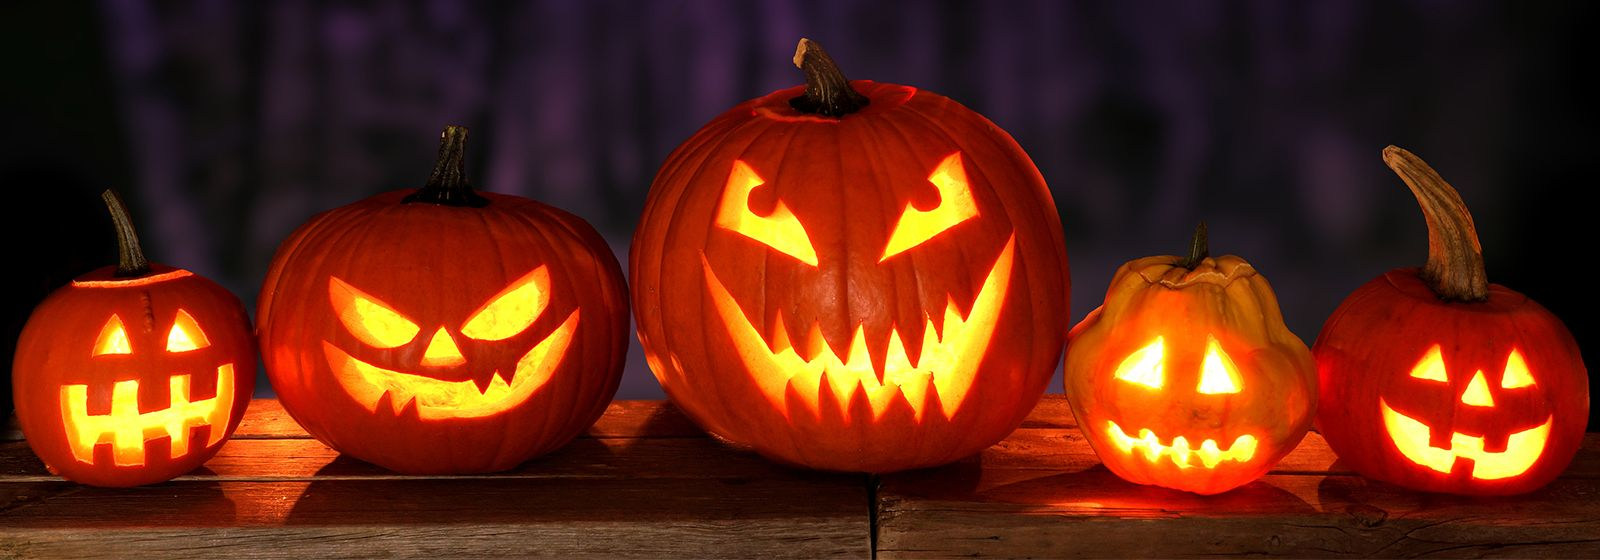 Halloween Spooky.3 Ways To Make Halloween Safe And Spooky Duke Energy